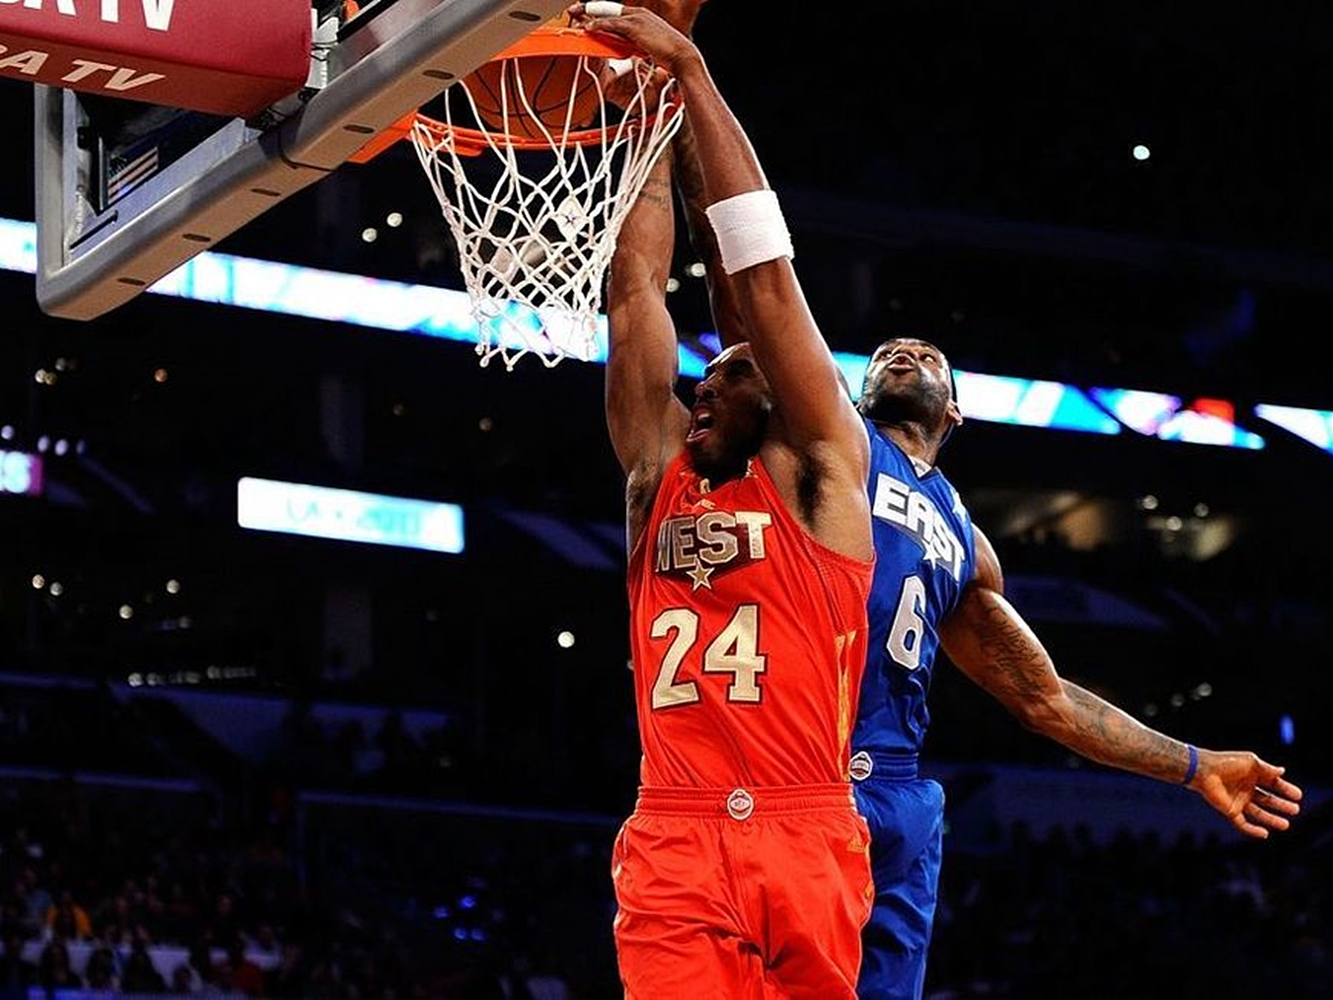 a2f647d7c0a The dunk happened during the 2011 All-Star game where Bryant won the MVP  award.